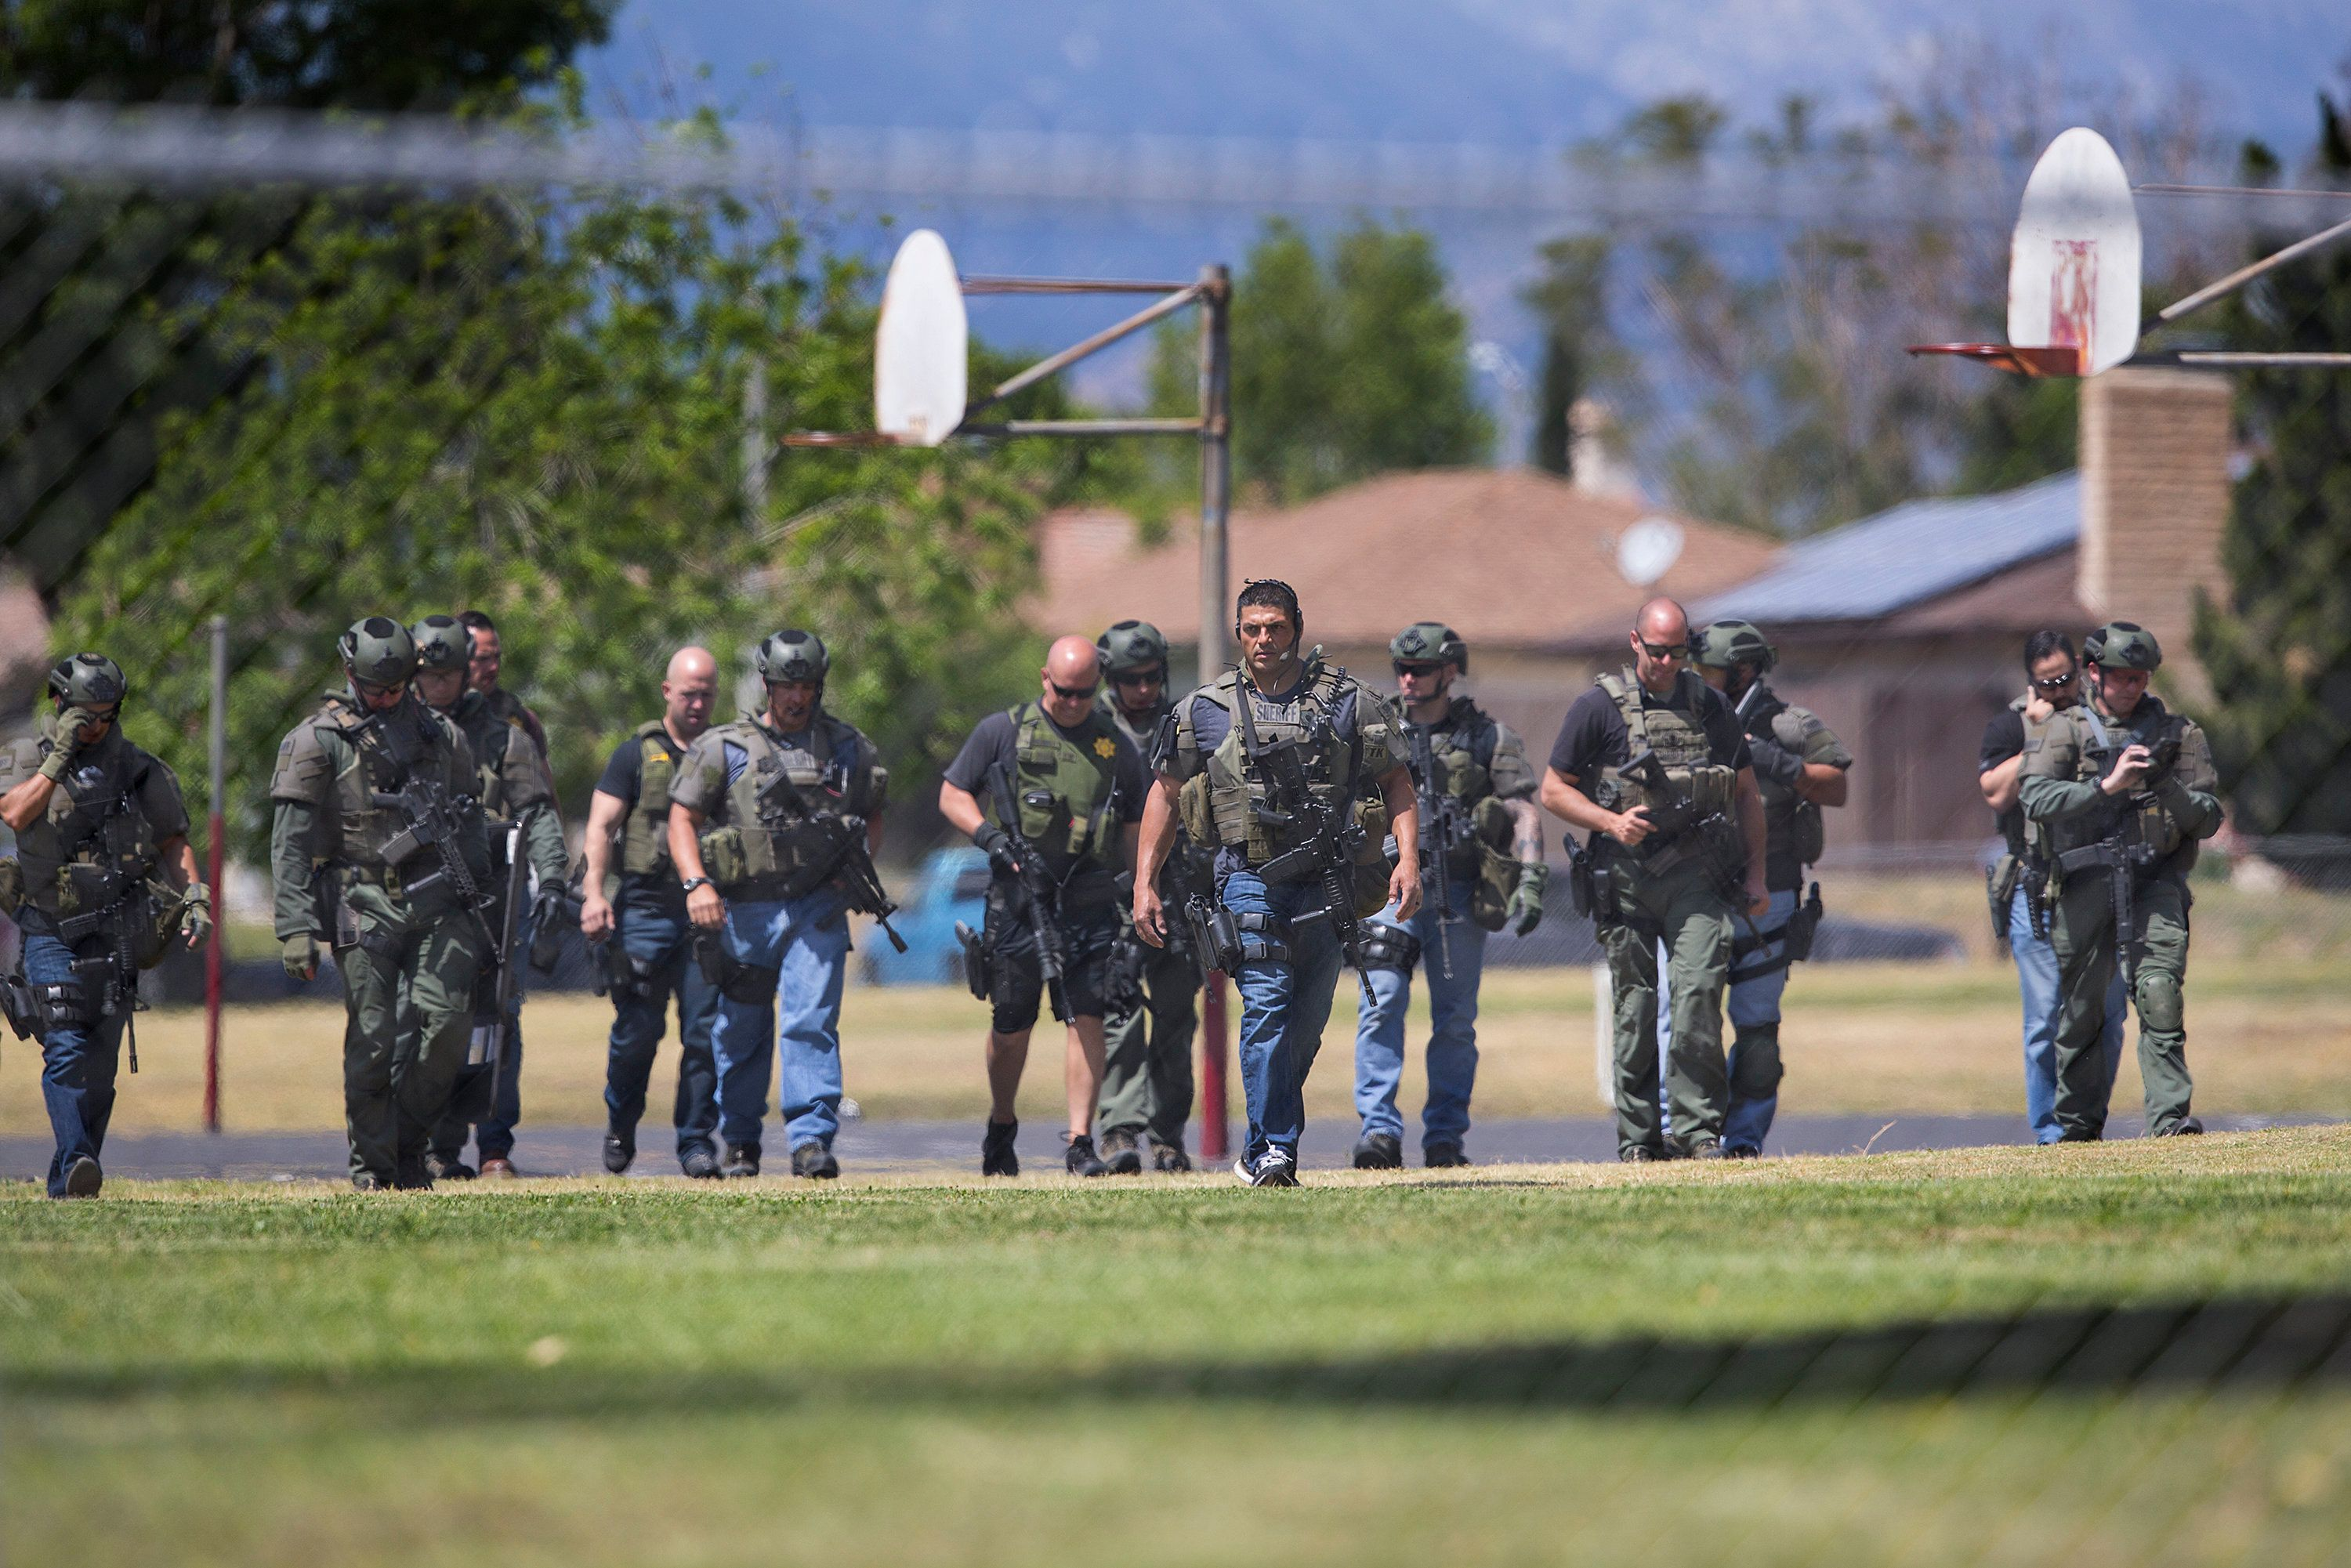 SAN BERNARDINO, CA - APRIL 10:  SWAT officers walk through the playground after a shooting inside North Park Elementary School on April 10, 2017 in San Bernardino, California. (Photo by Gina Ferazzi/Los Angeles Times via Getty Images)